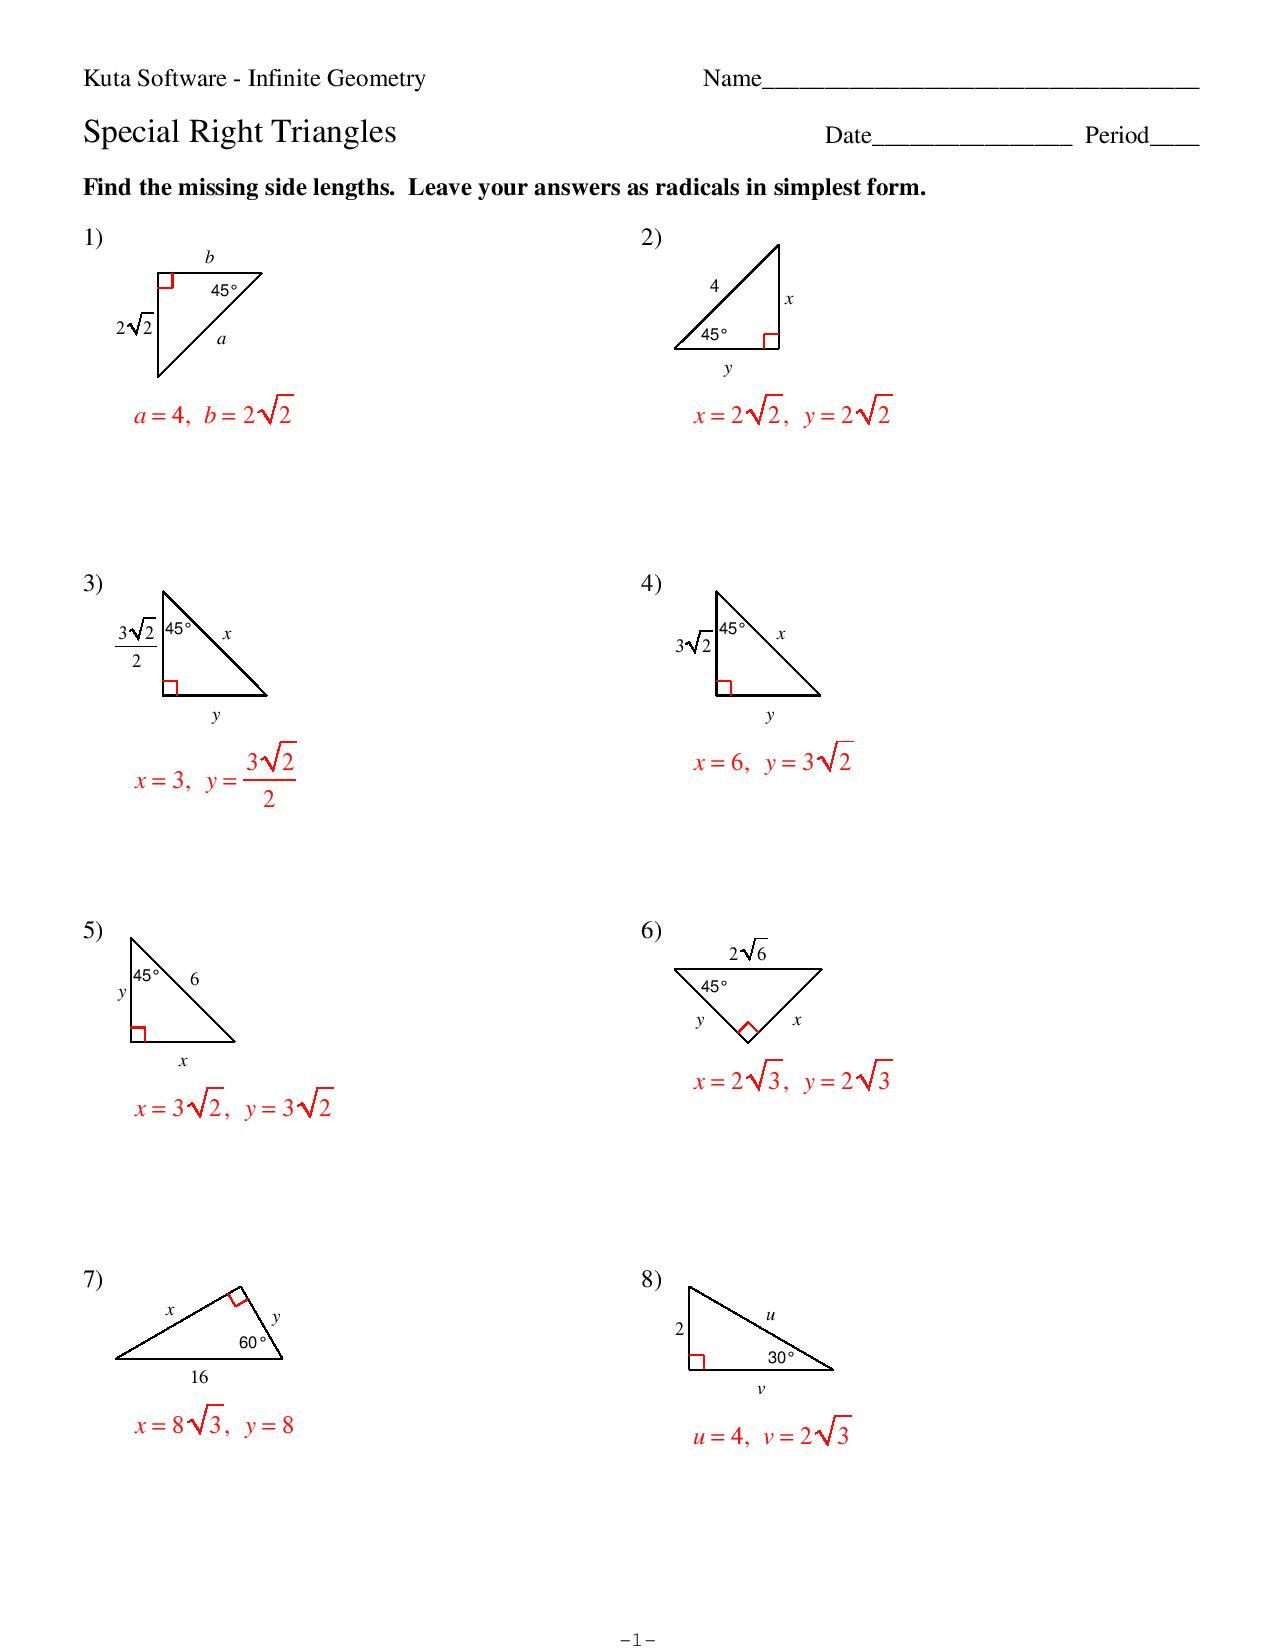 Special Right Triangles Practice Worksheet Test 3 Pg 11 Answers